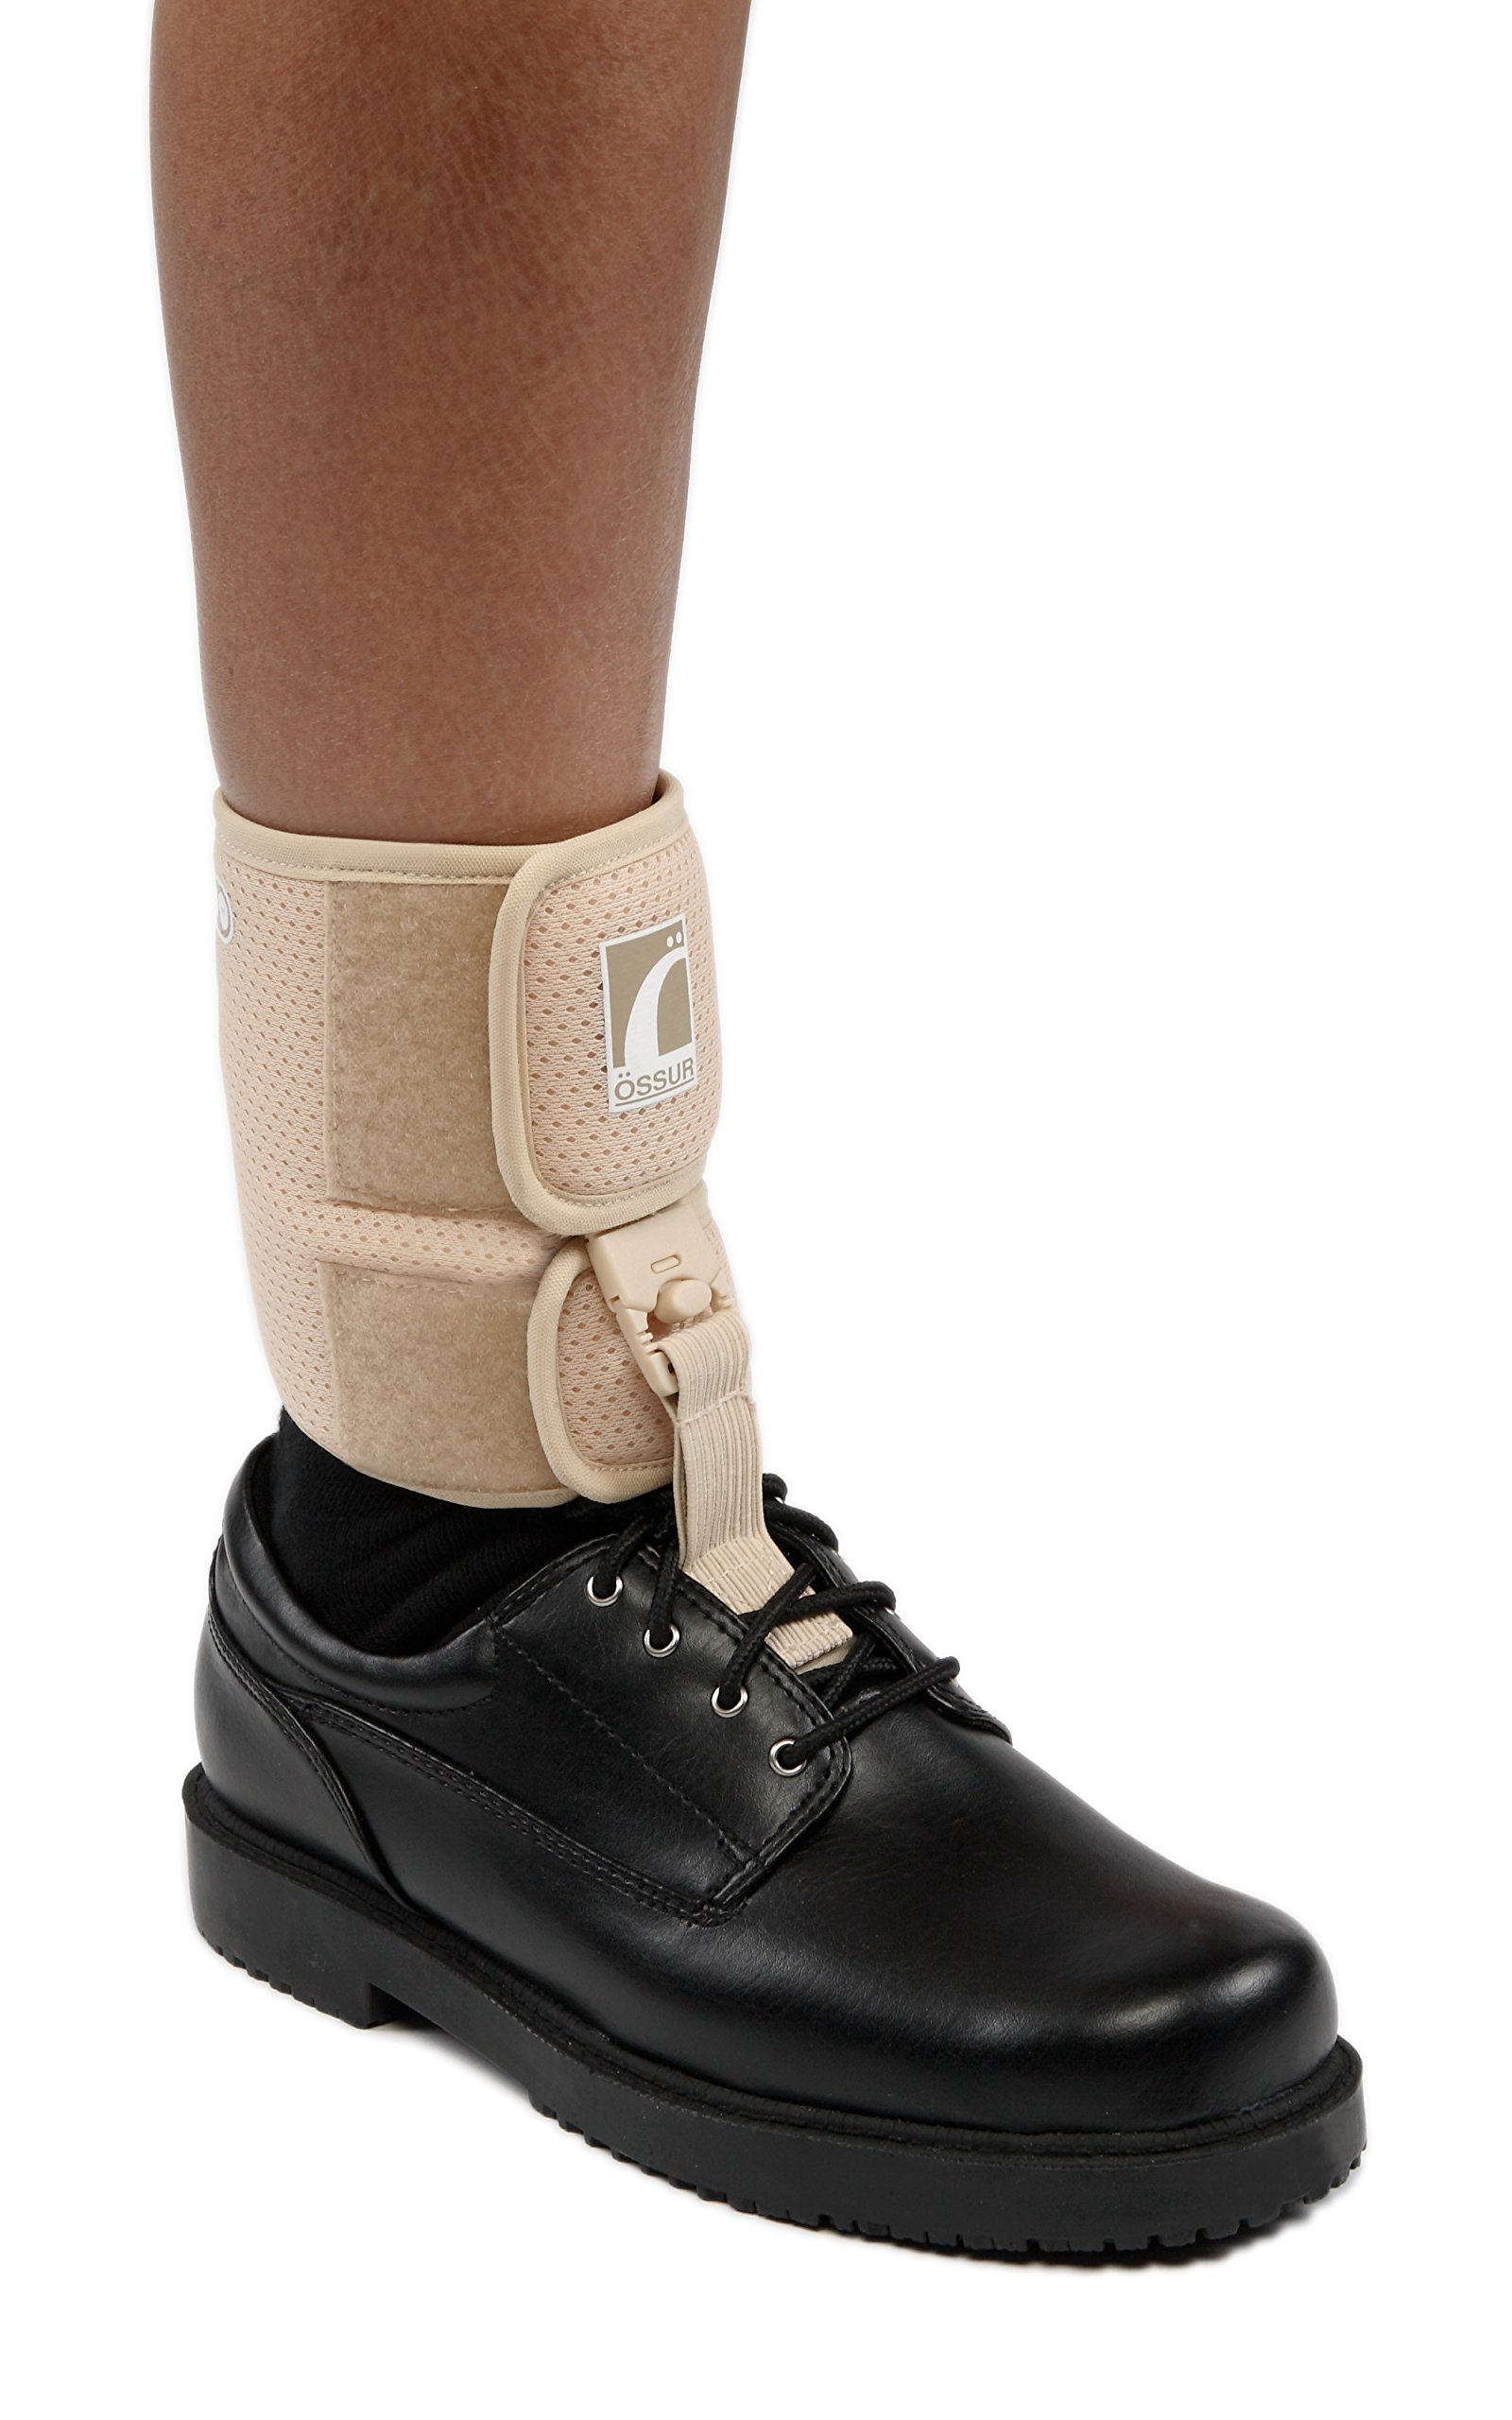 Ossur Foot-up Drop Foot Brace - Orthosis Ankle Brace Support Comfort Cushioned Adjustable Wrap (Large, Beige) by Ossur